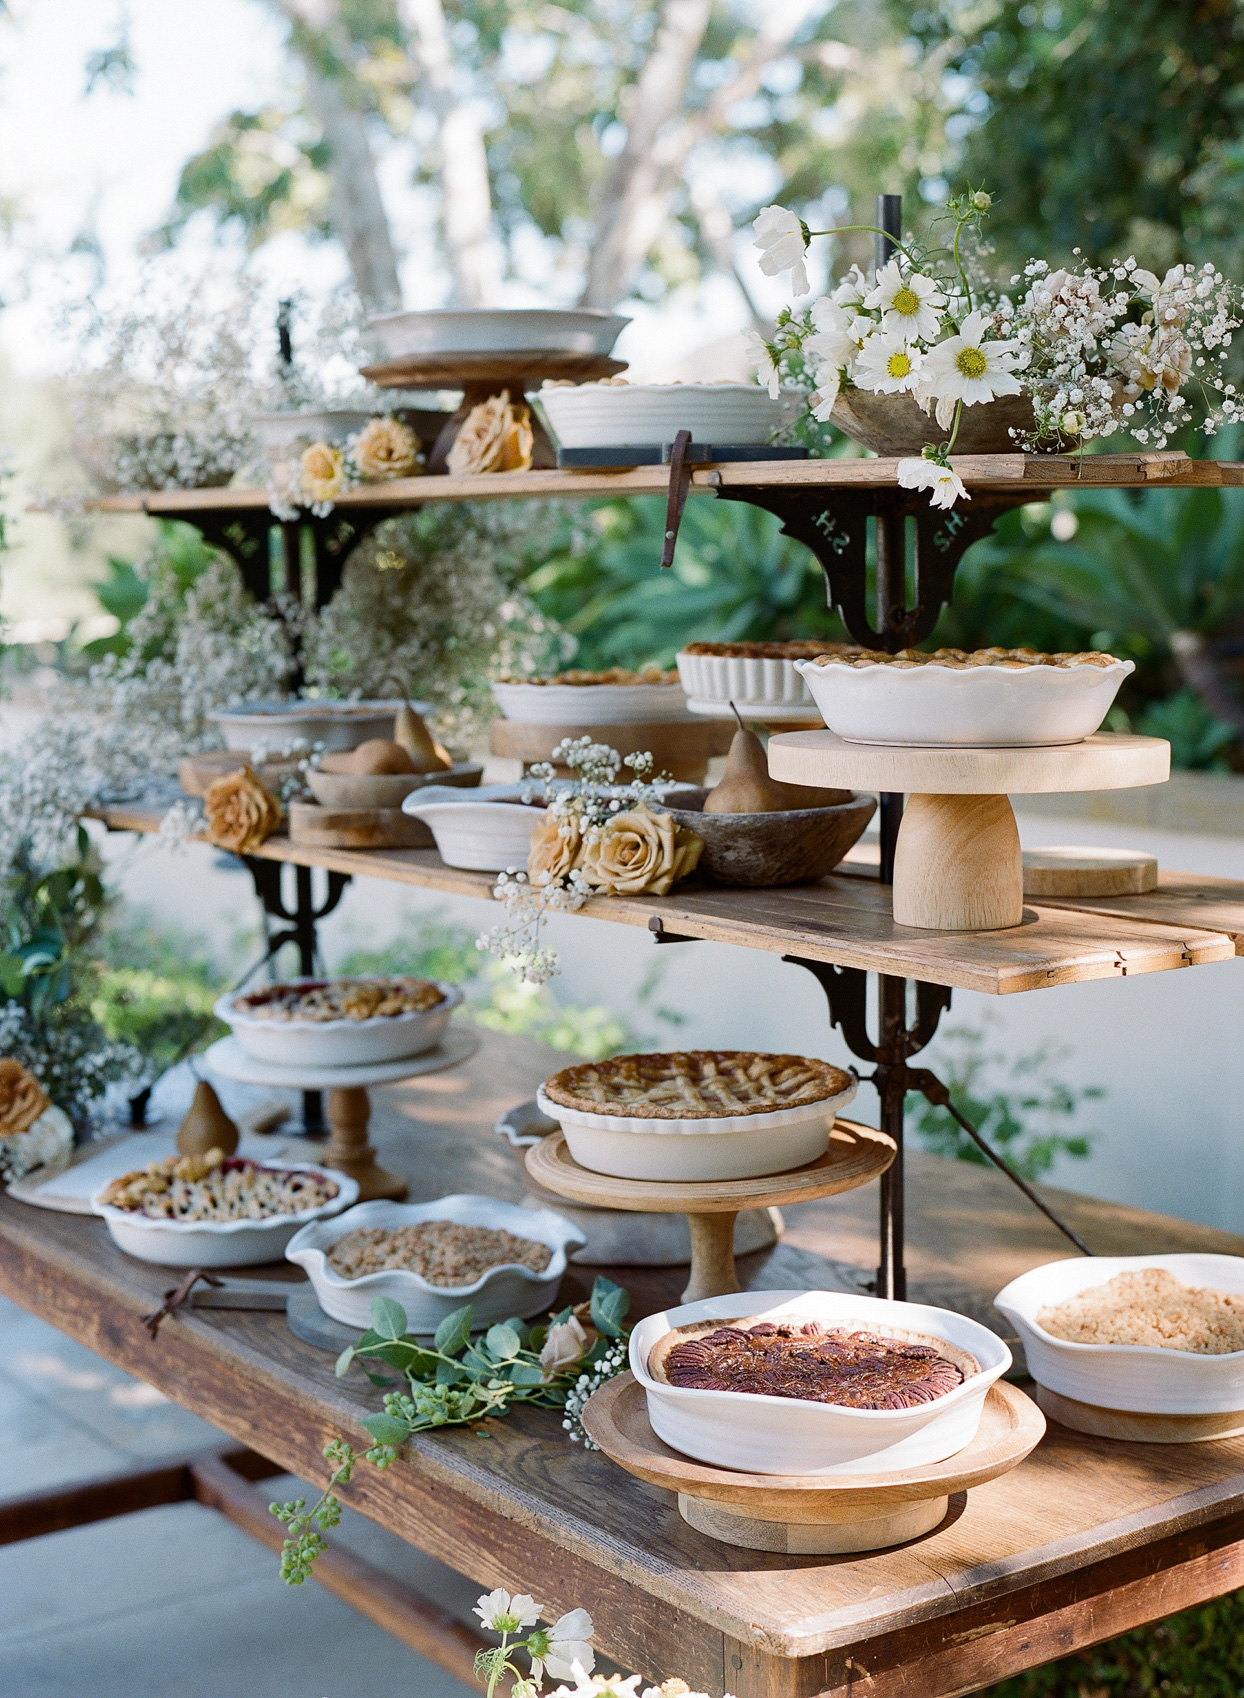 tiered table with various pies on display